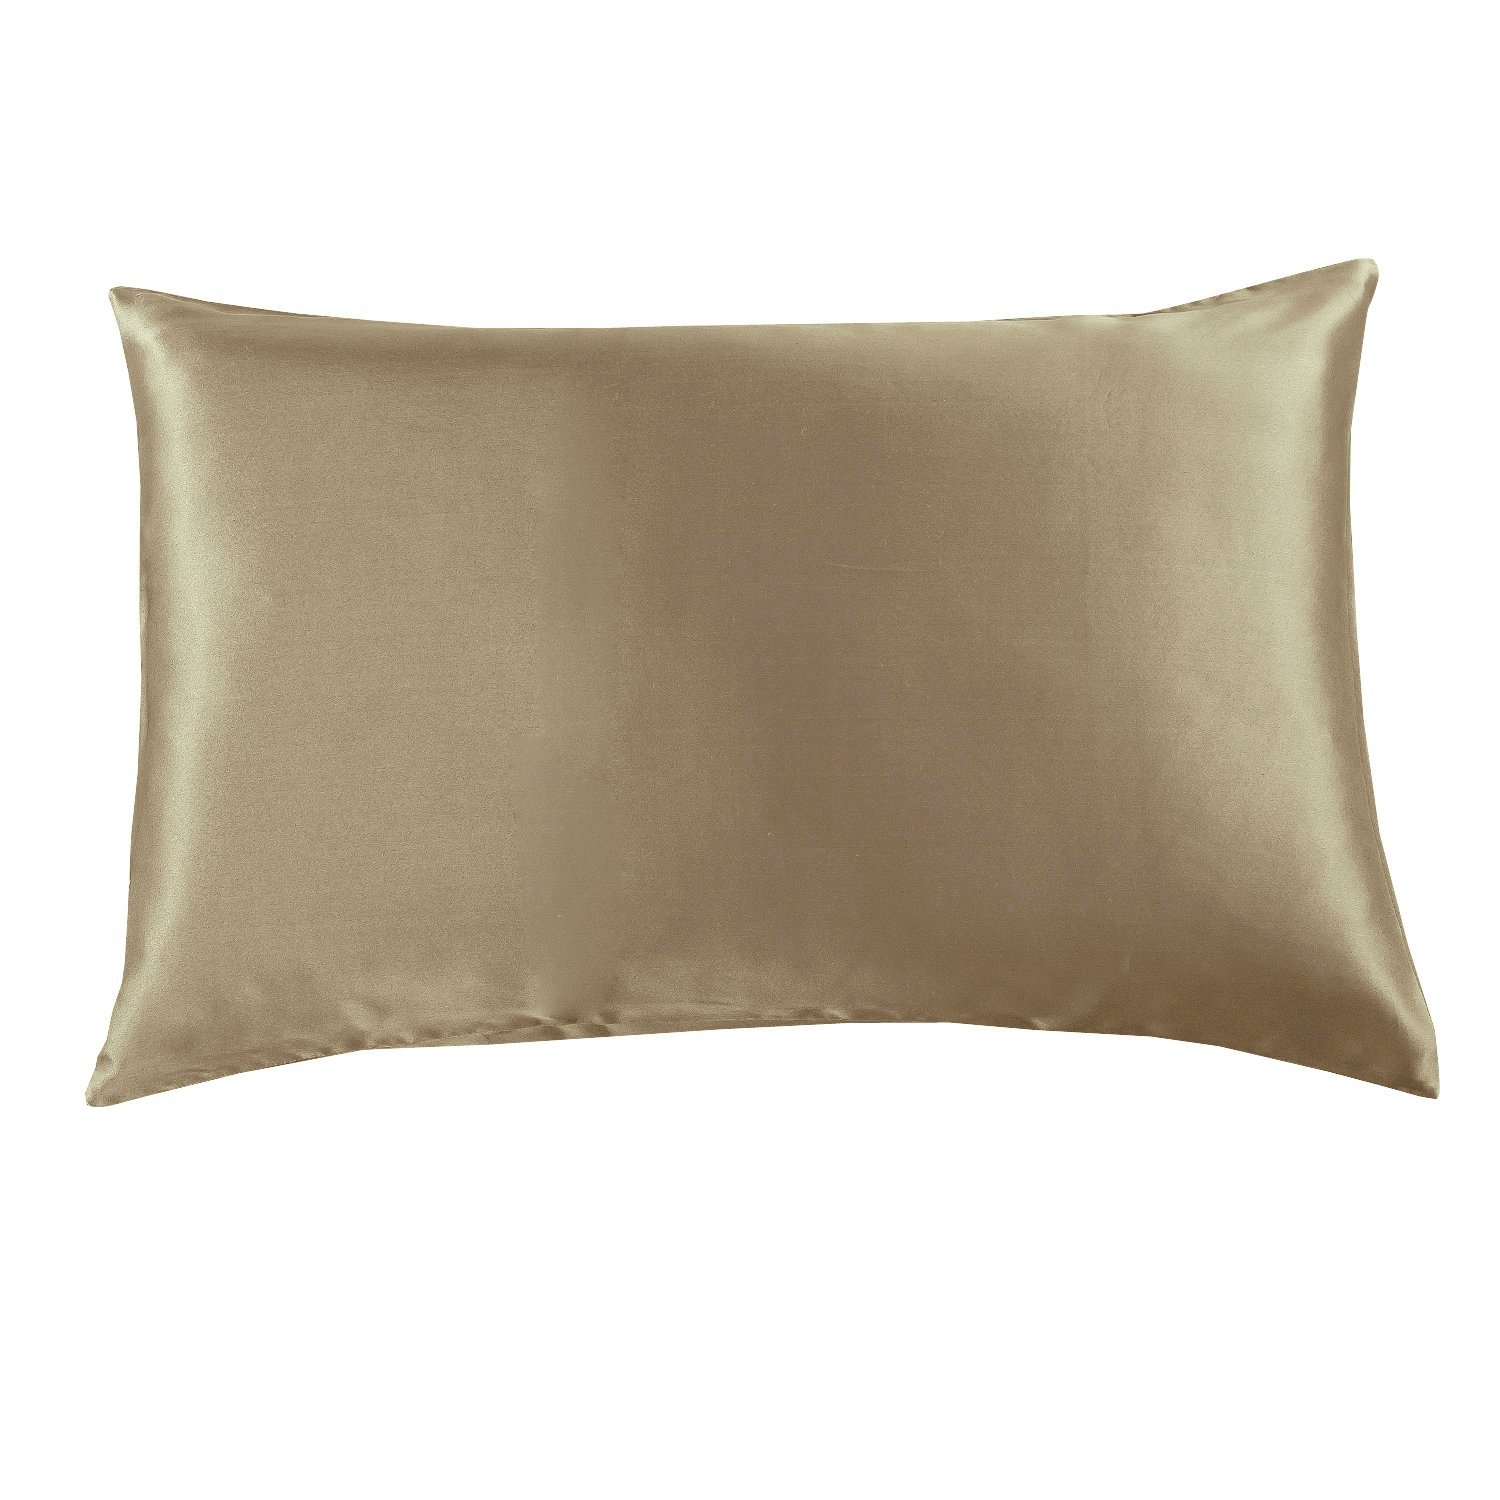 Orose 19mm Luxury 100% Pure Mulberry Silk Pillowcase, Good for hair, sleeping and facial beauty. Prevent from wrinkle and allergy. With hidden zipper. Gift wrap. (Standard, Taupe)